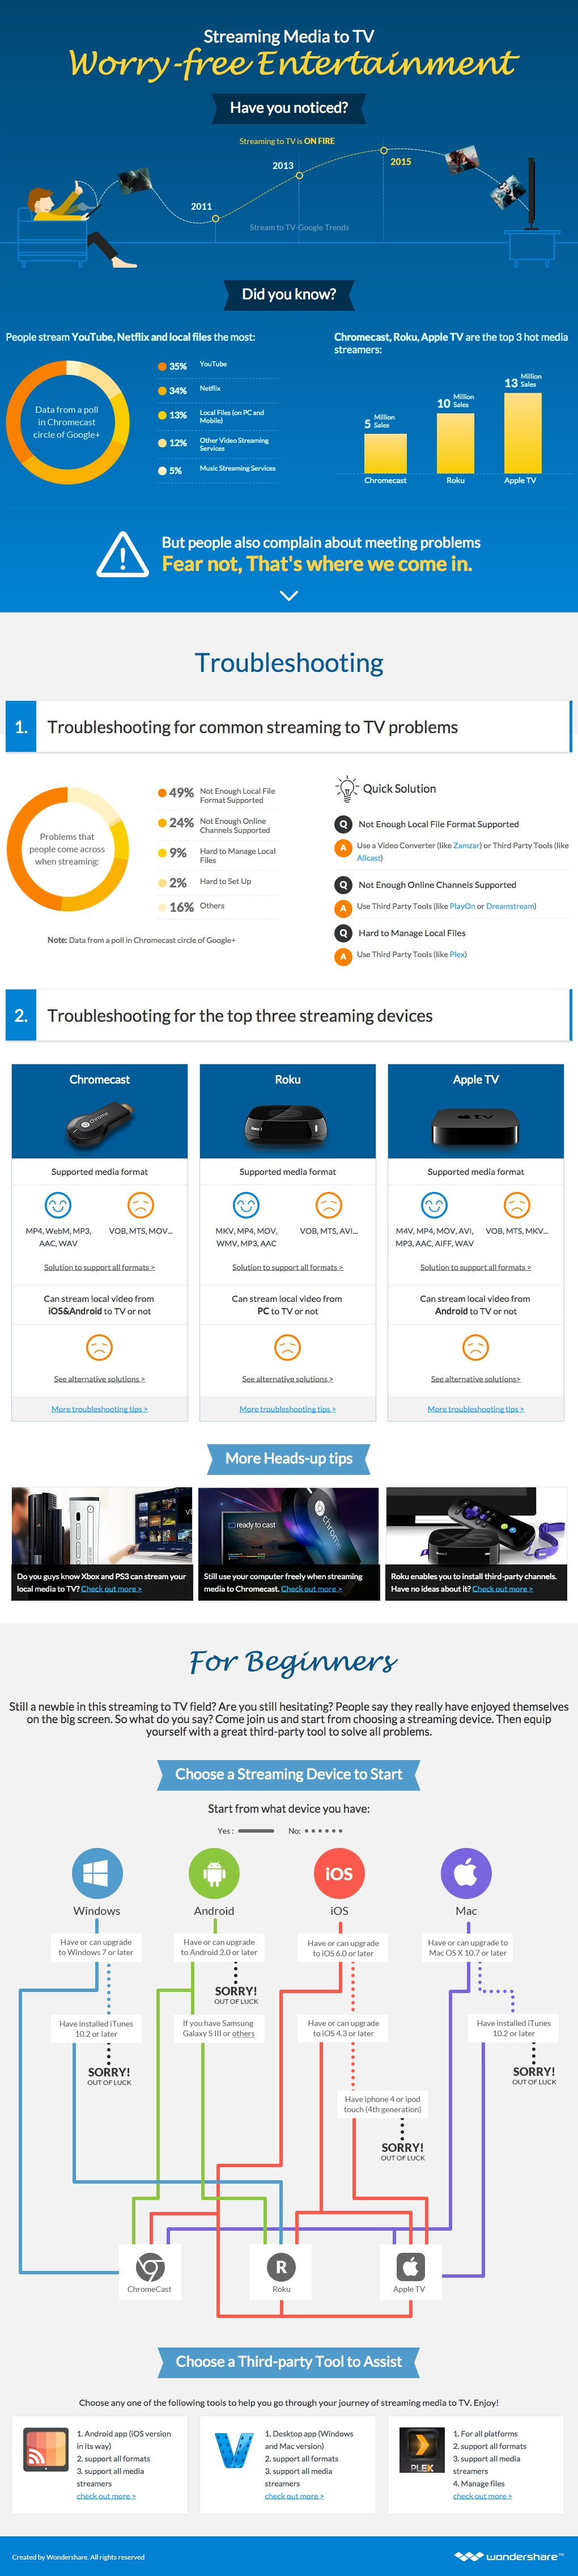 Troubleshooting and guide for streaming media to TV